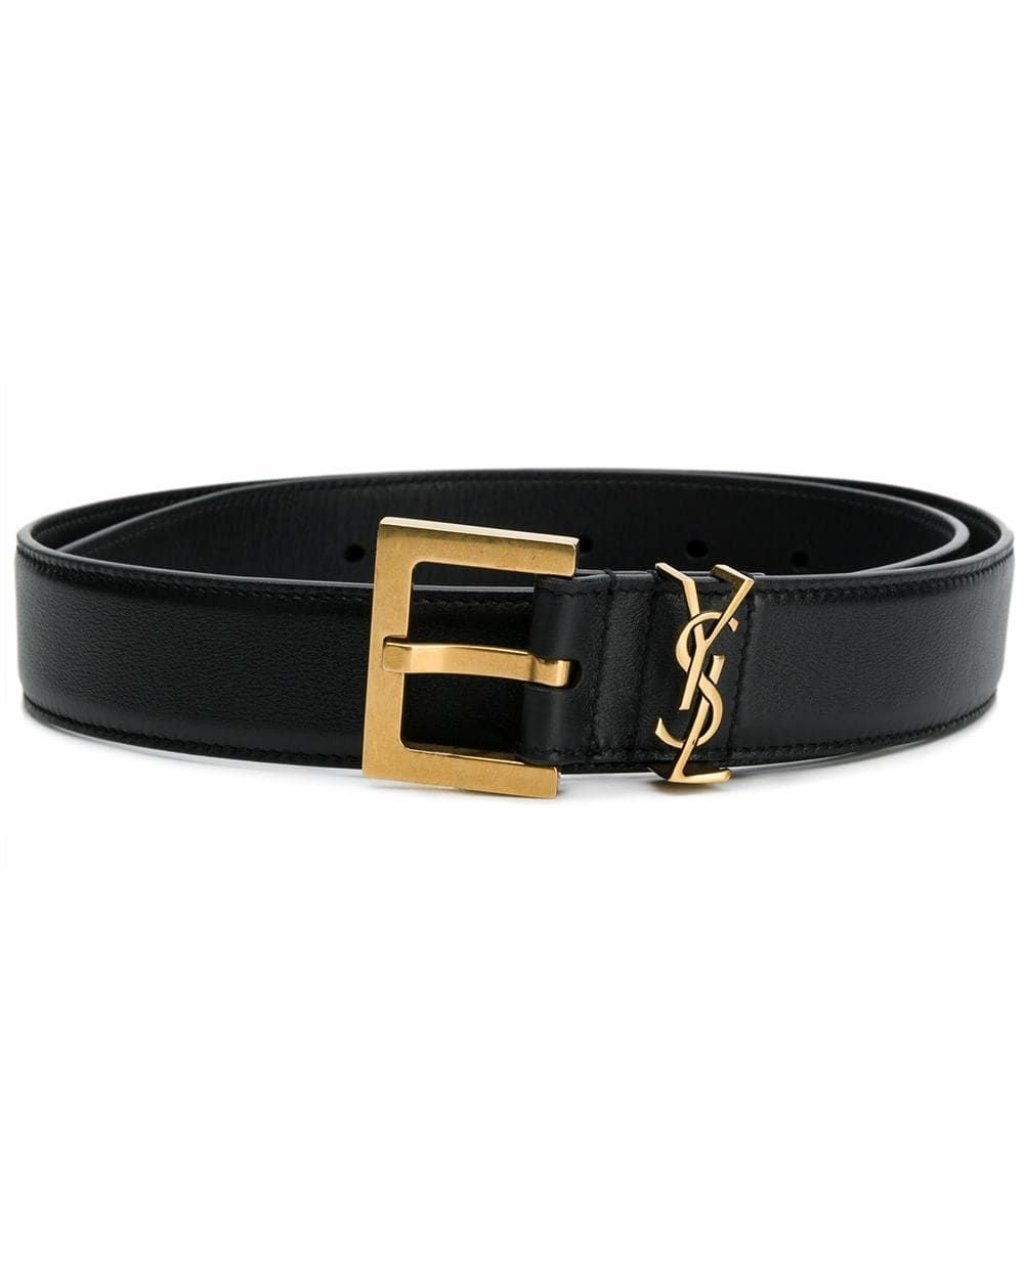 Saint Laurent  Ysl Plaque Buckle Belt